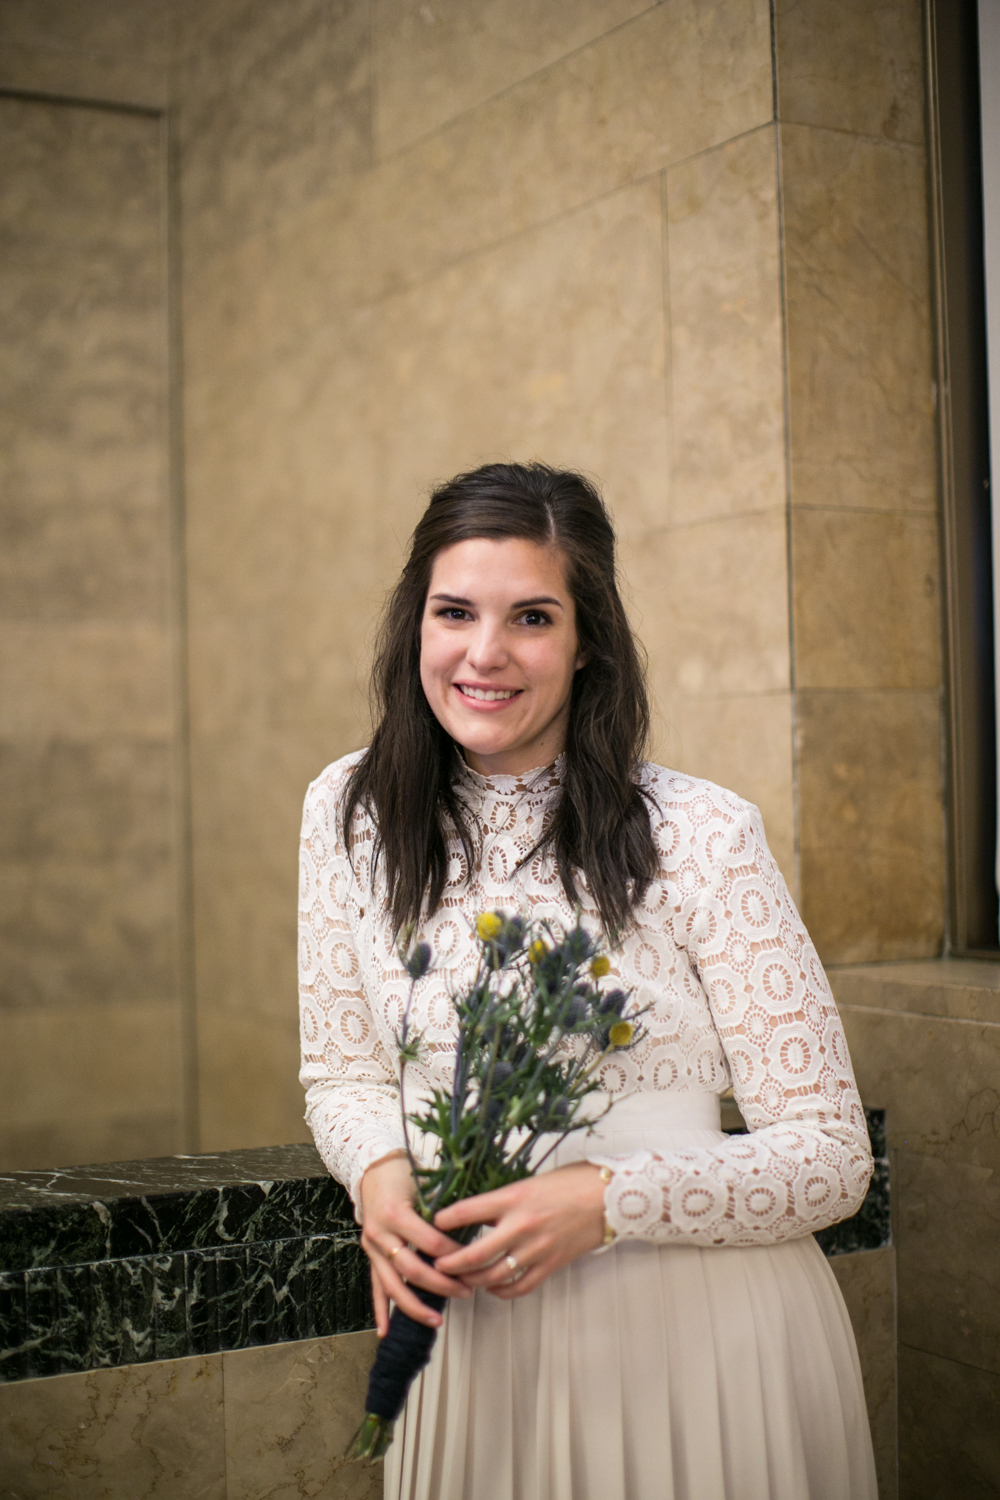 NYC bride with bouquet